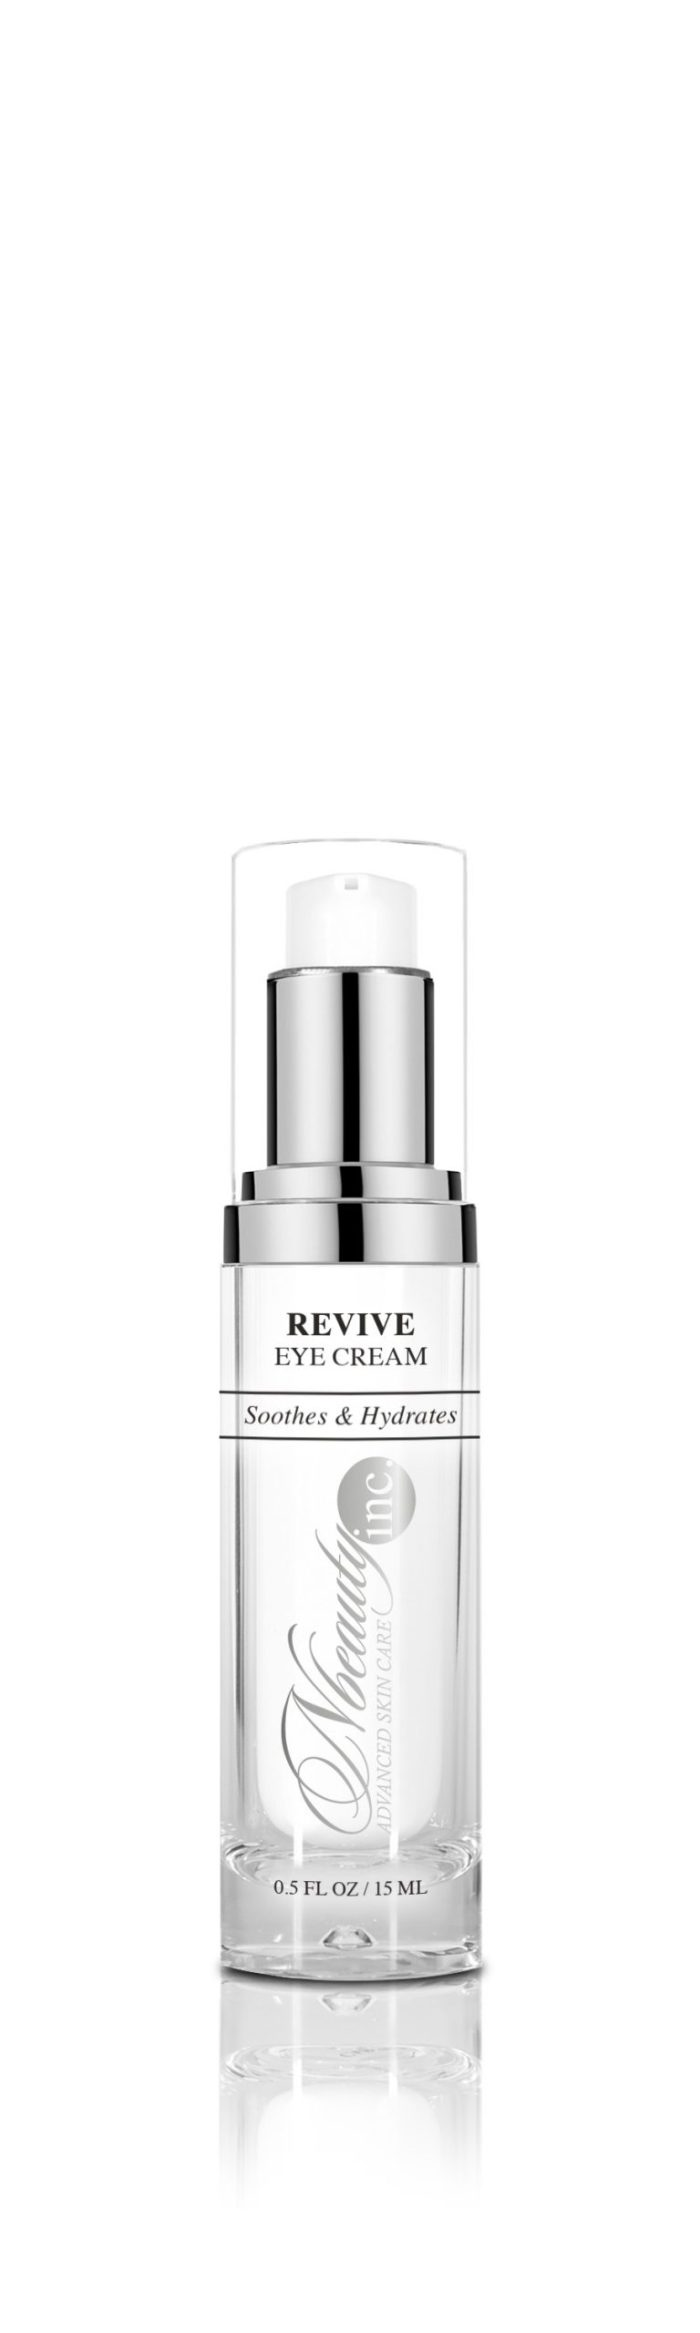 Revive Eye Cream